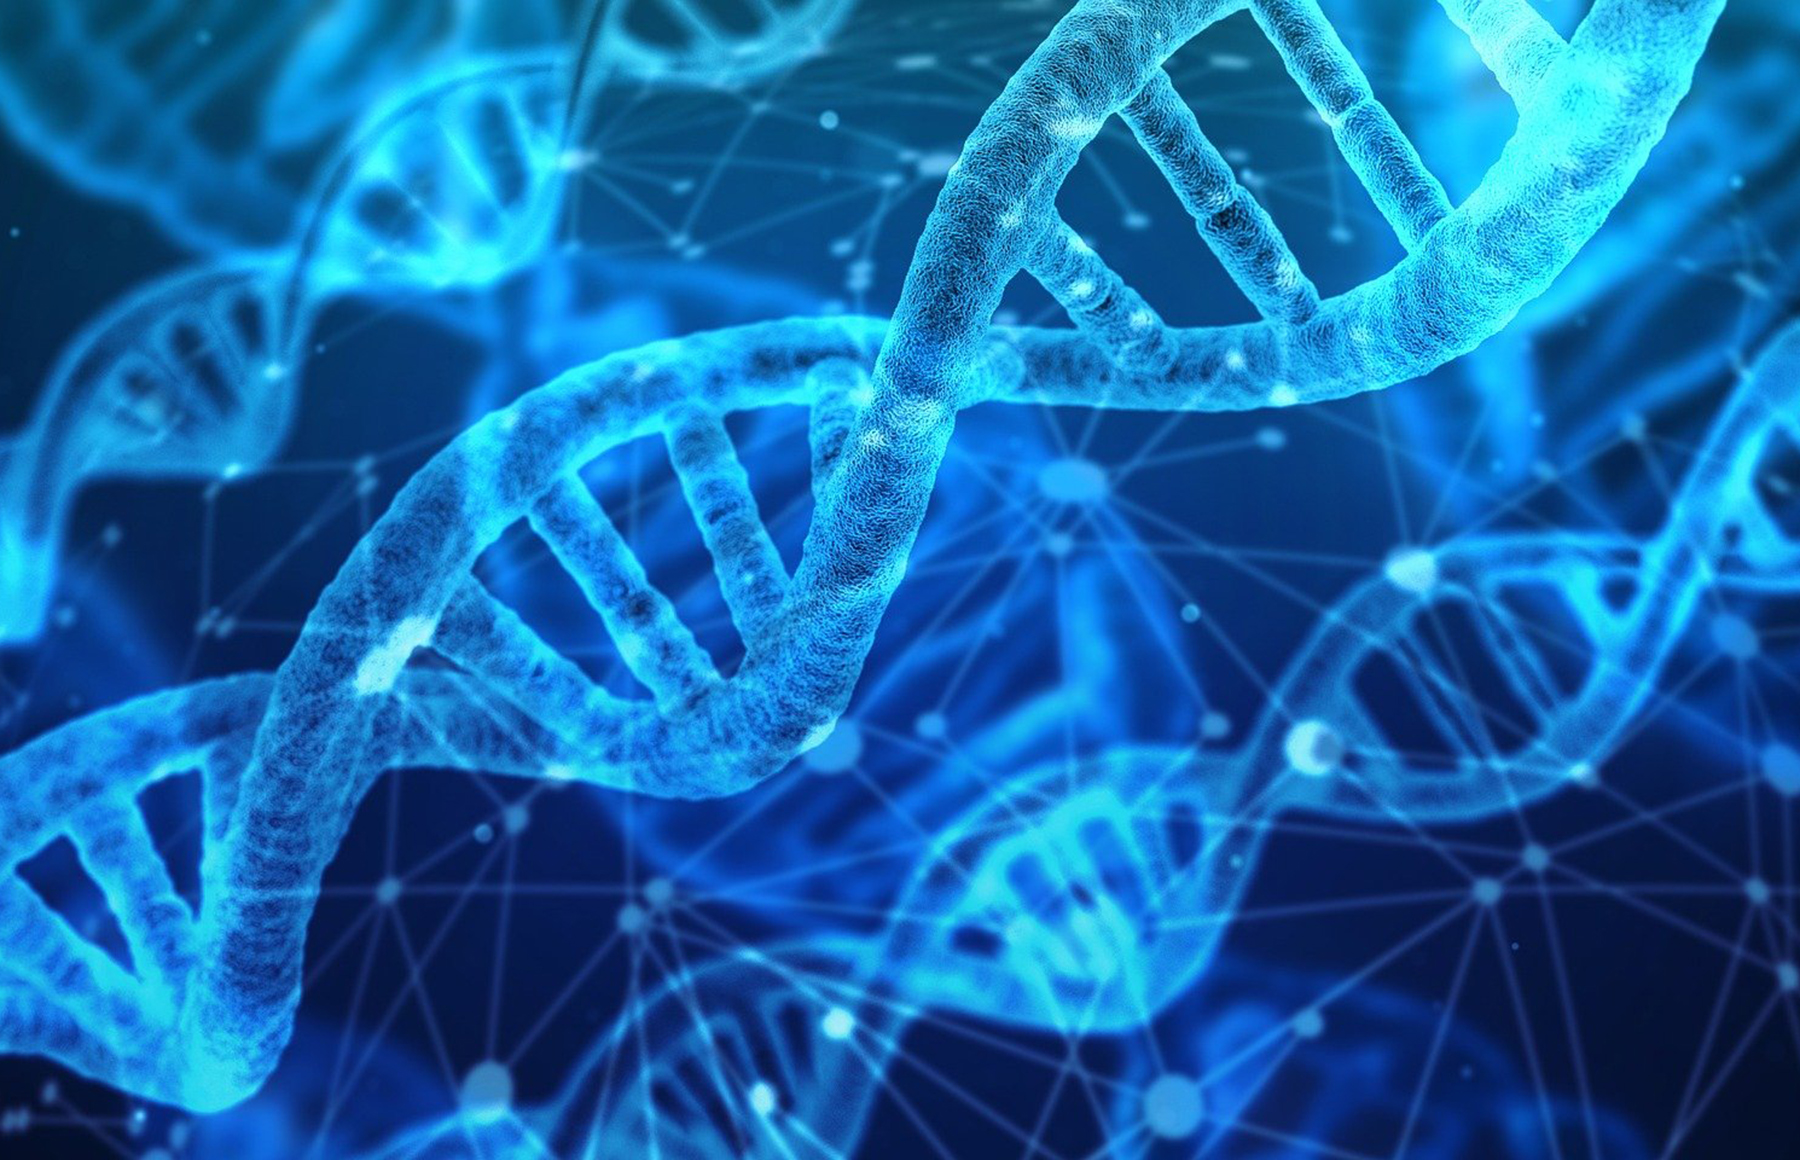 UC Berkeley researchers discover unique DNA sequence with potential to combat climate change